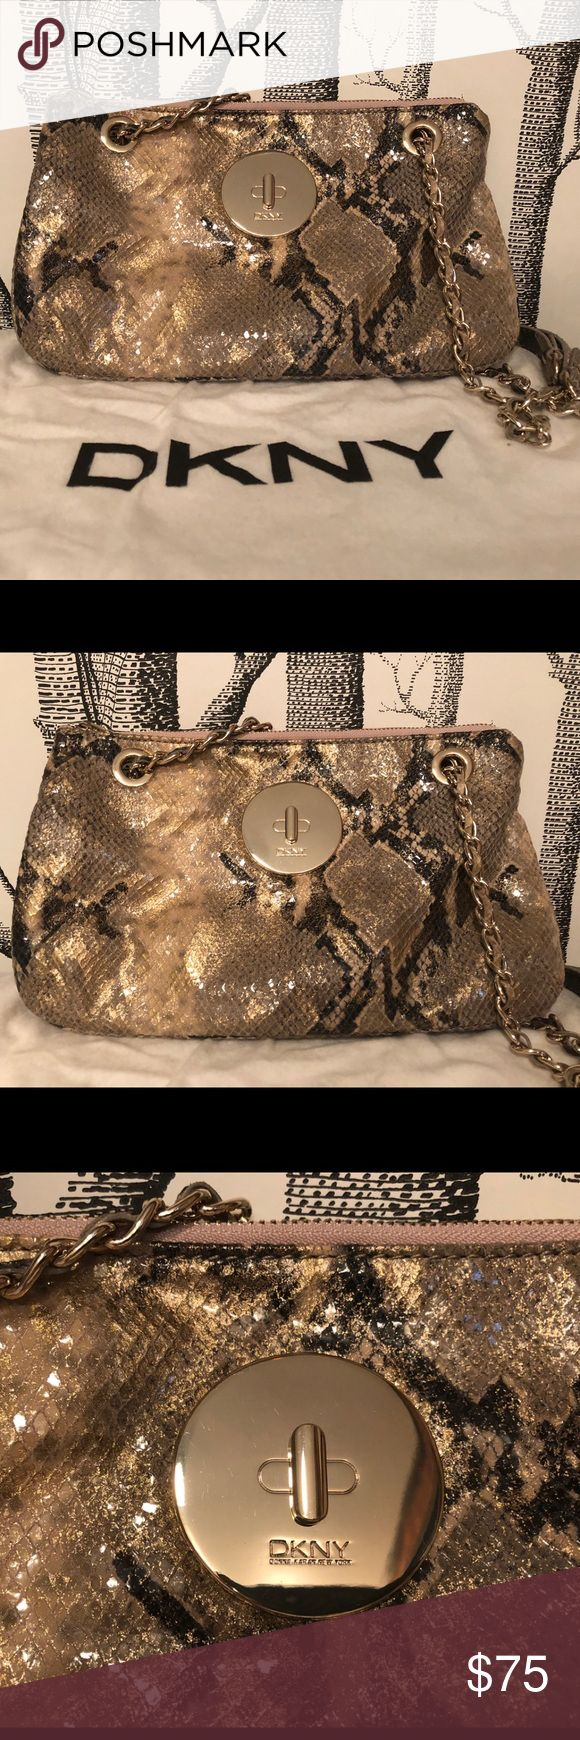 DKNY snake print leather evening bag DKNY snake print leather handbag. Great for night or daytime use. Strap can be crossbody or made shorter as a shoulder bag. Gorgeous gold details.  Never been used. Dust bag included. Dkny Bags Shoulder Bags